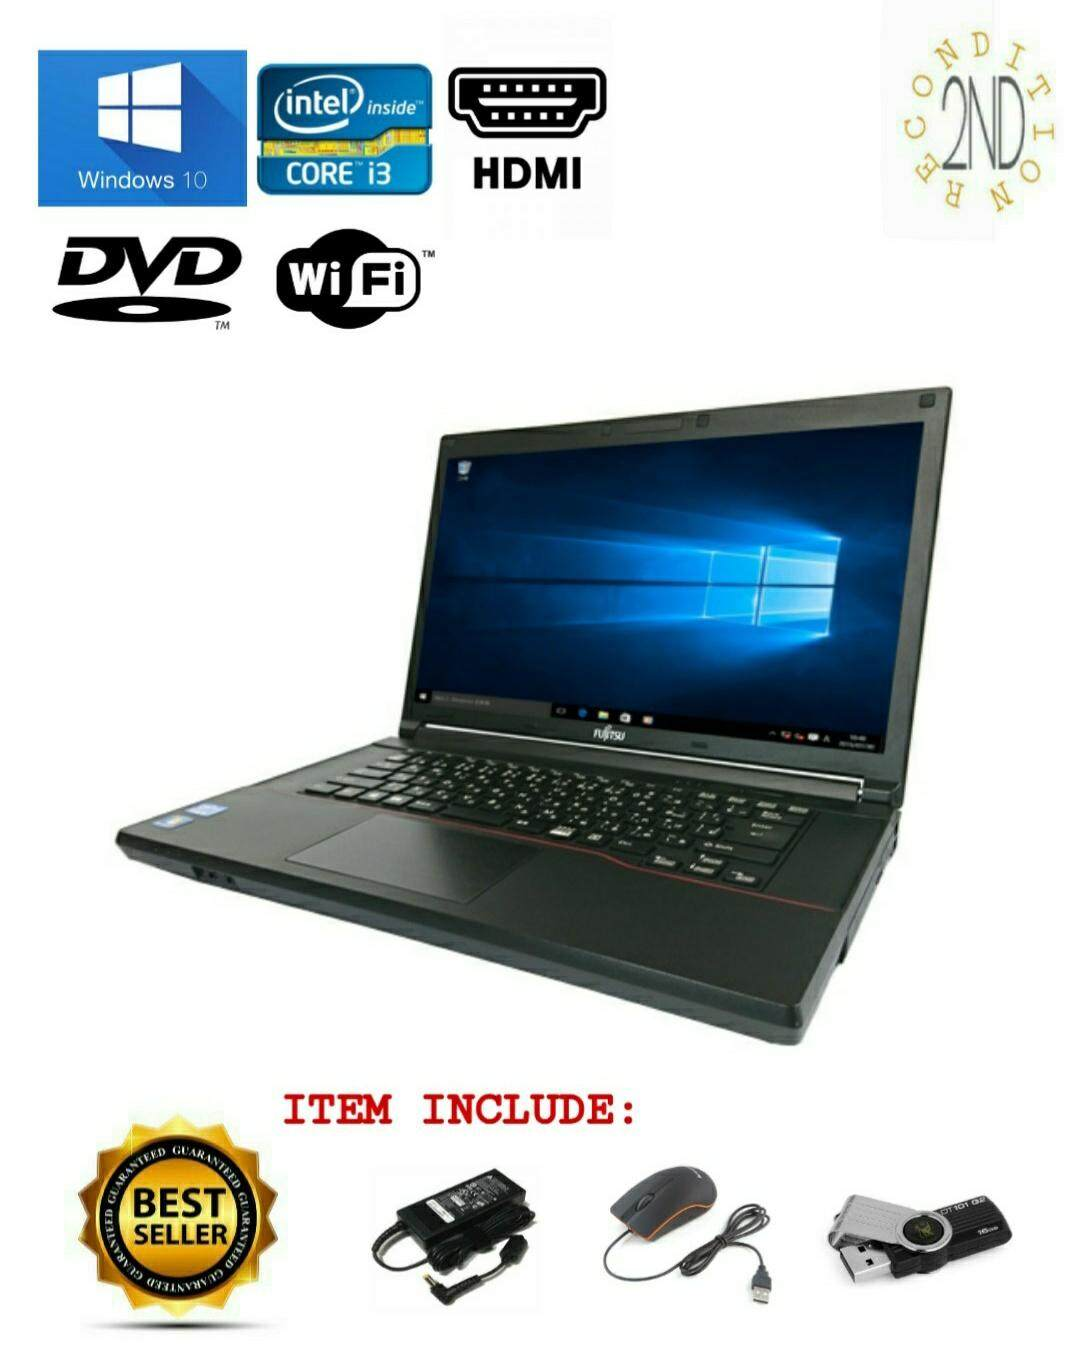 Fujitsu Intel Core i3 4Gb DDR3 Windows 10 Laptop Malaysia